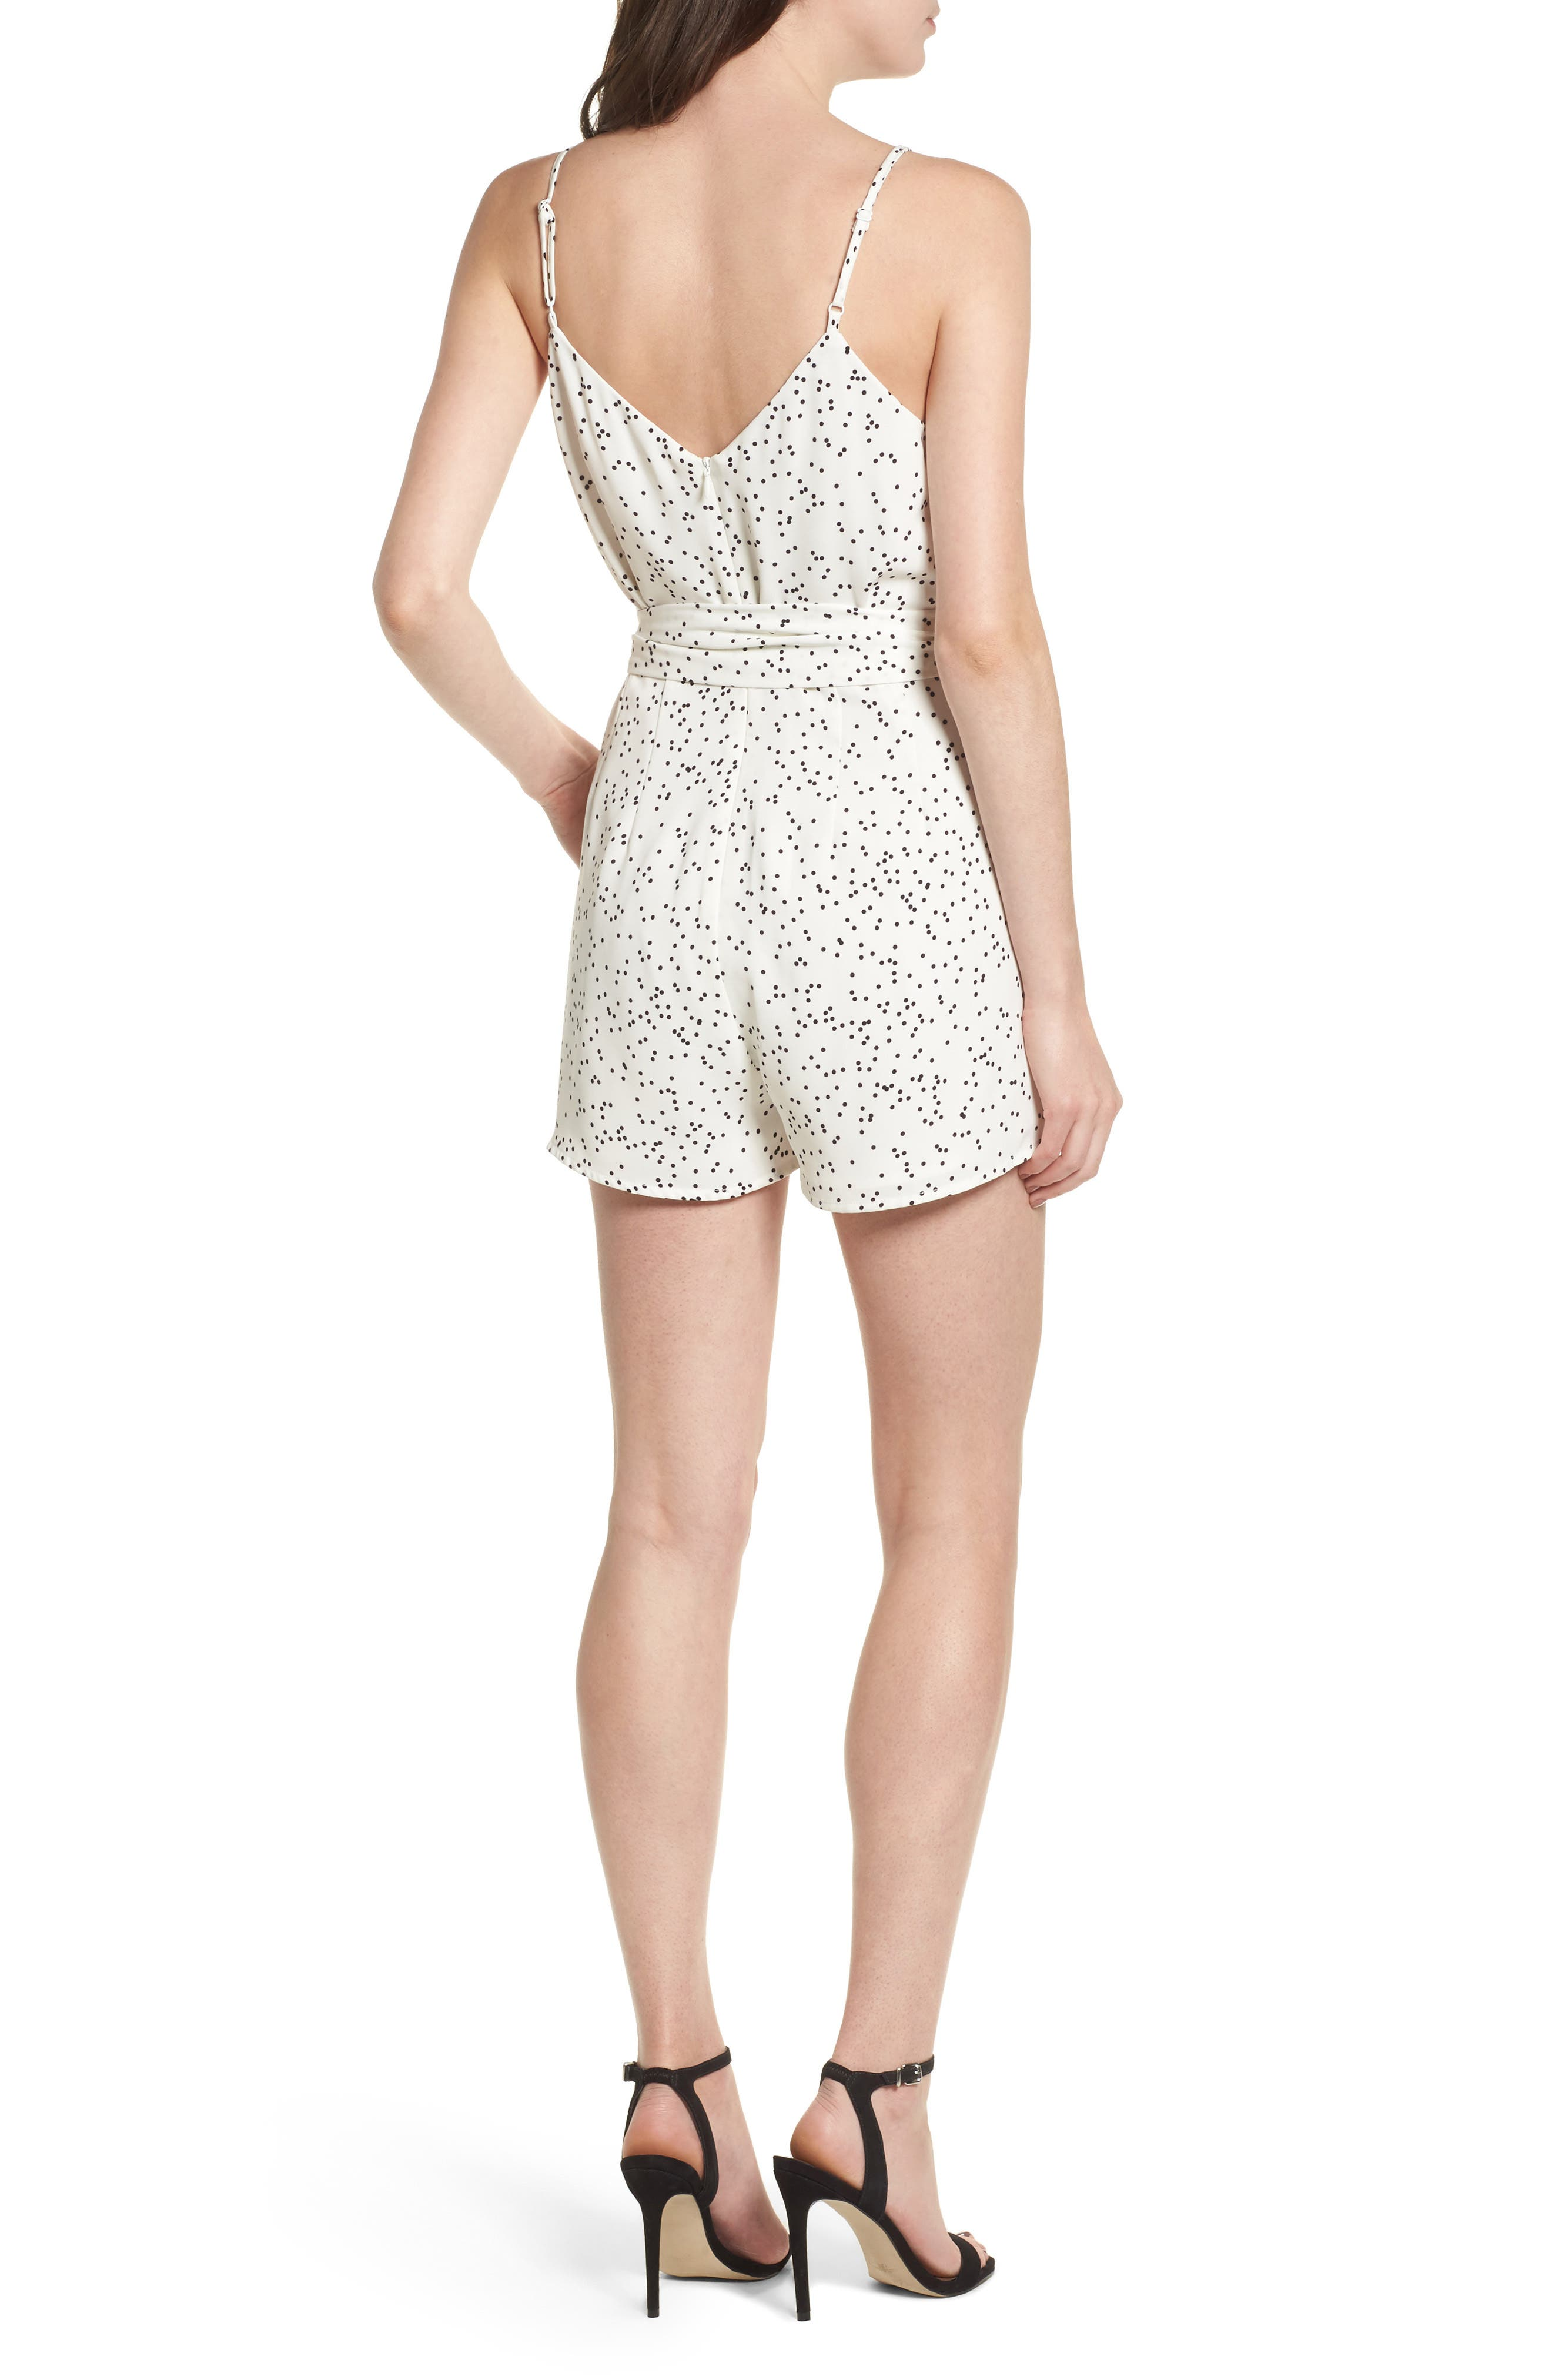 Embrace Me Romper,                             Alternate thumbnail 2, color,                             White W Black Spot